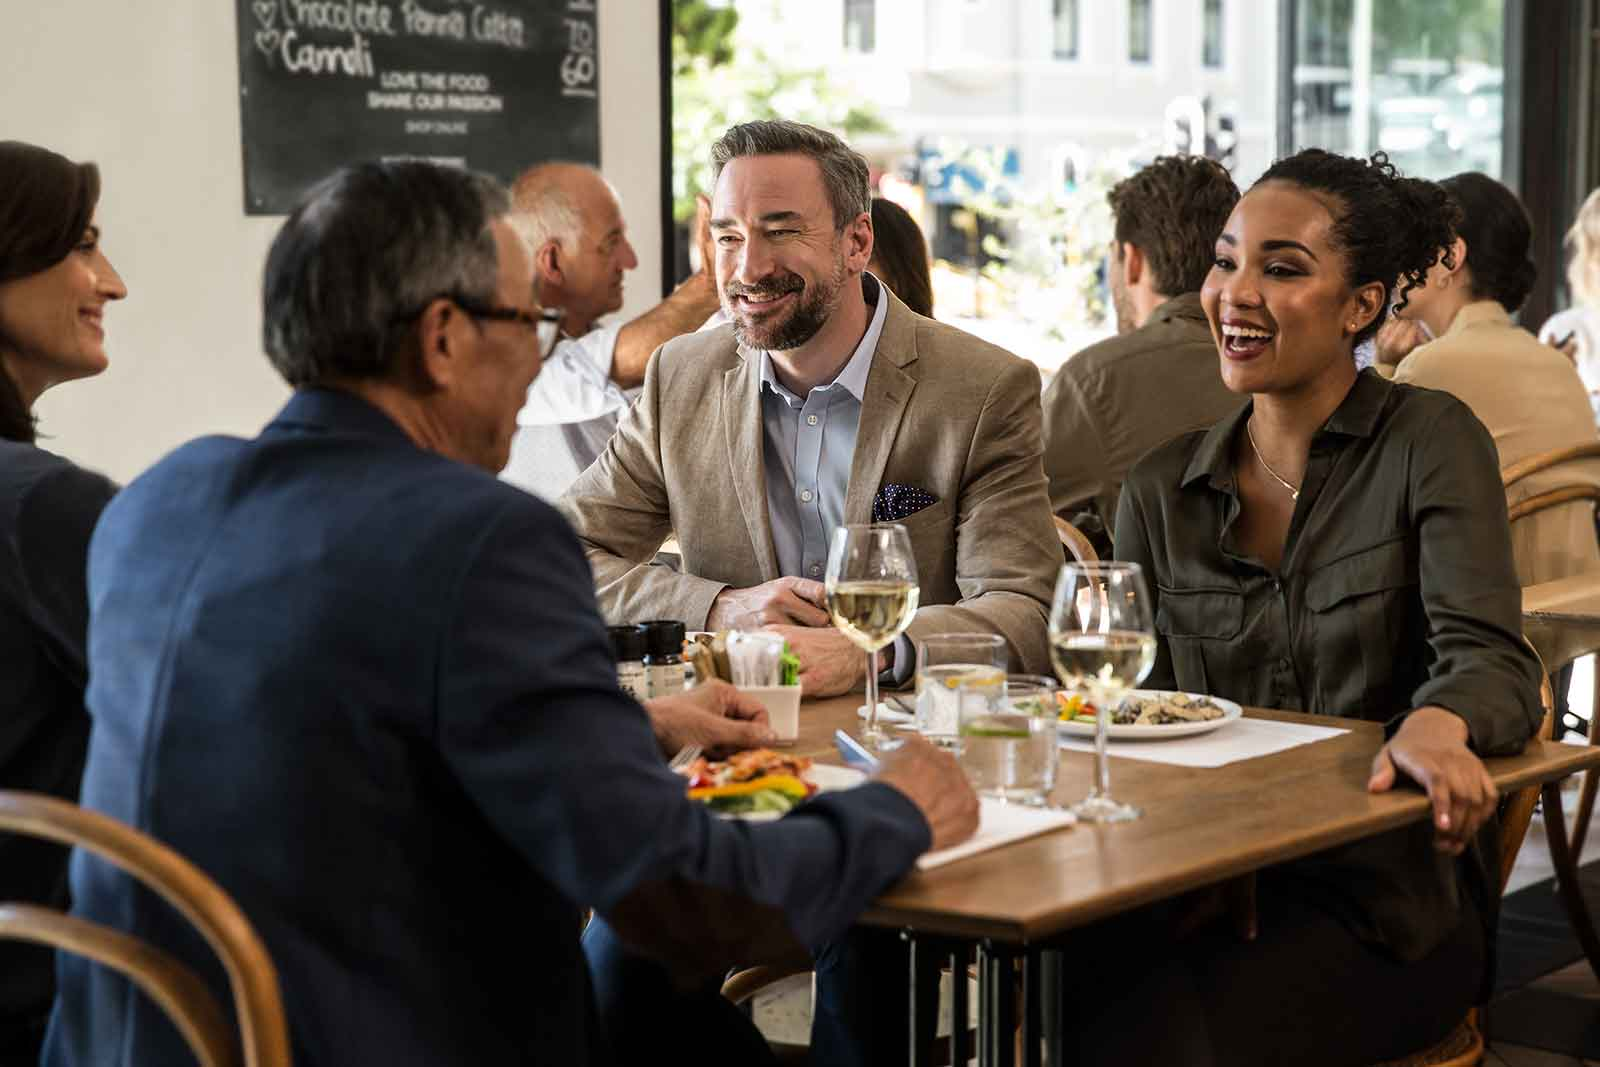 Man wearing hearing aids having lunch with friends in a noisy restaurant